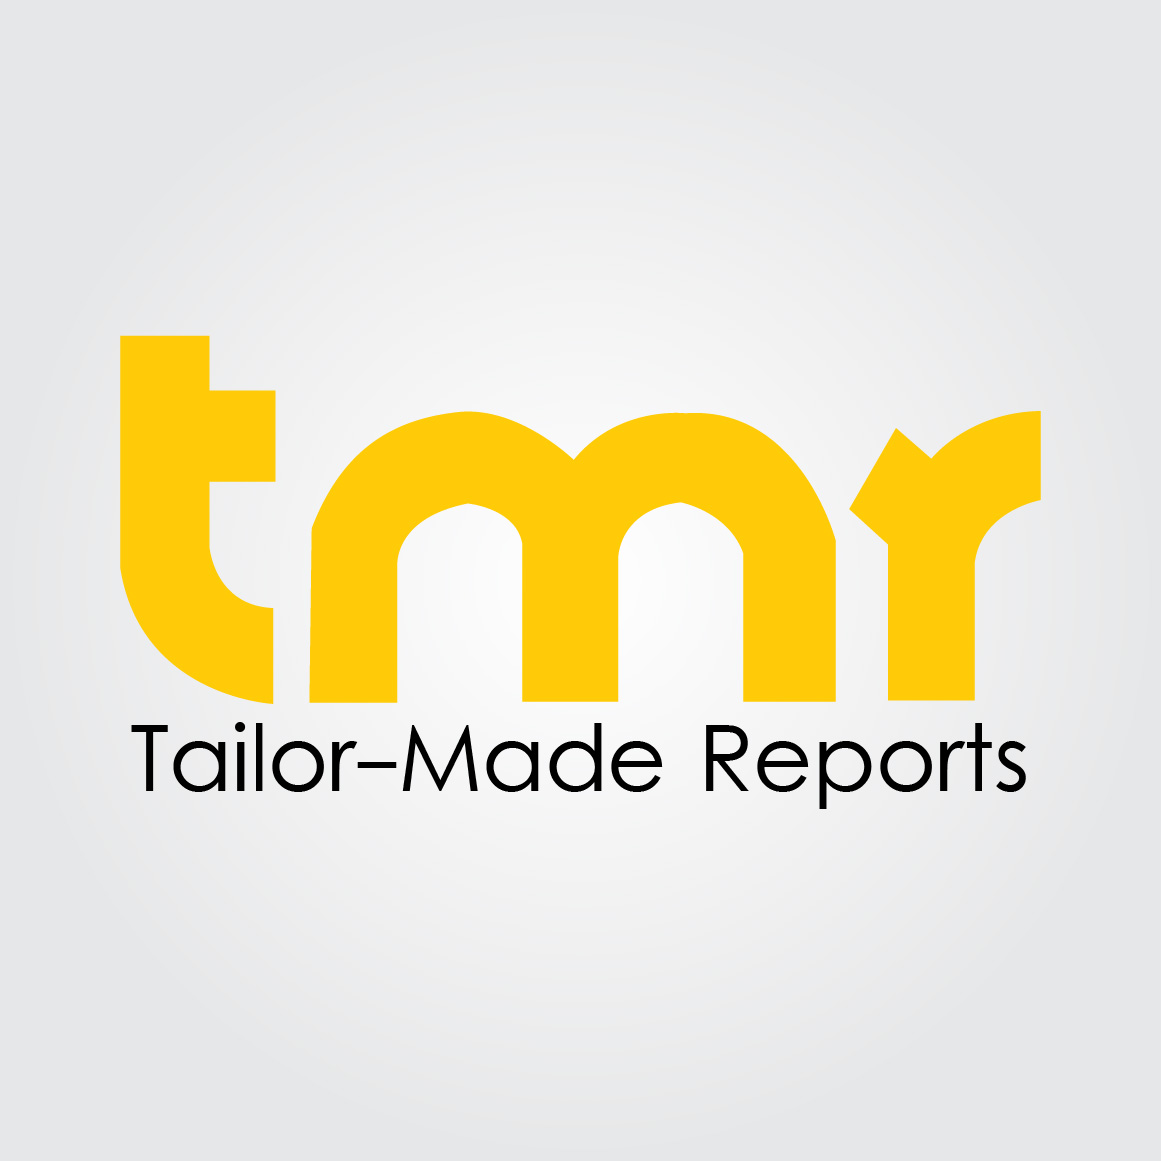 Food Grade Paraffin Oil Market - Latin America and the Asia Pacific are identifying various opportunities in the market | TMR Research Stuy